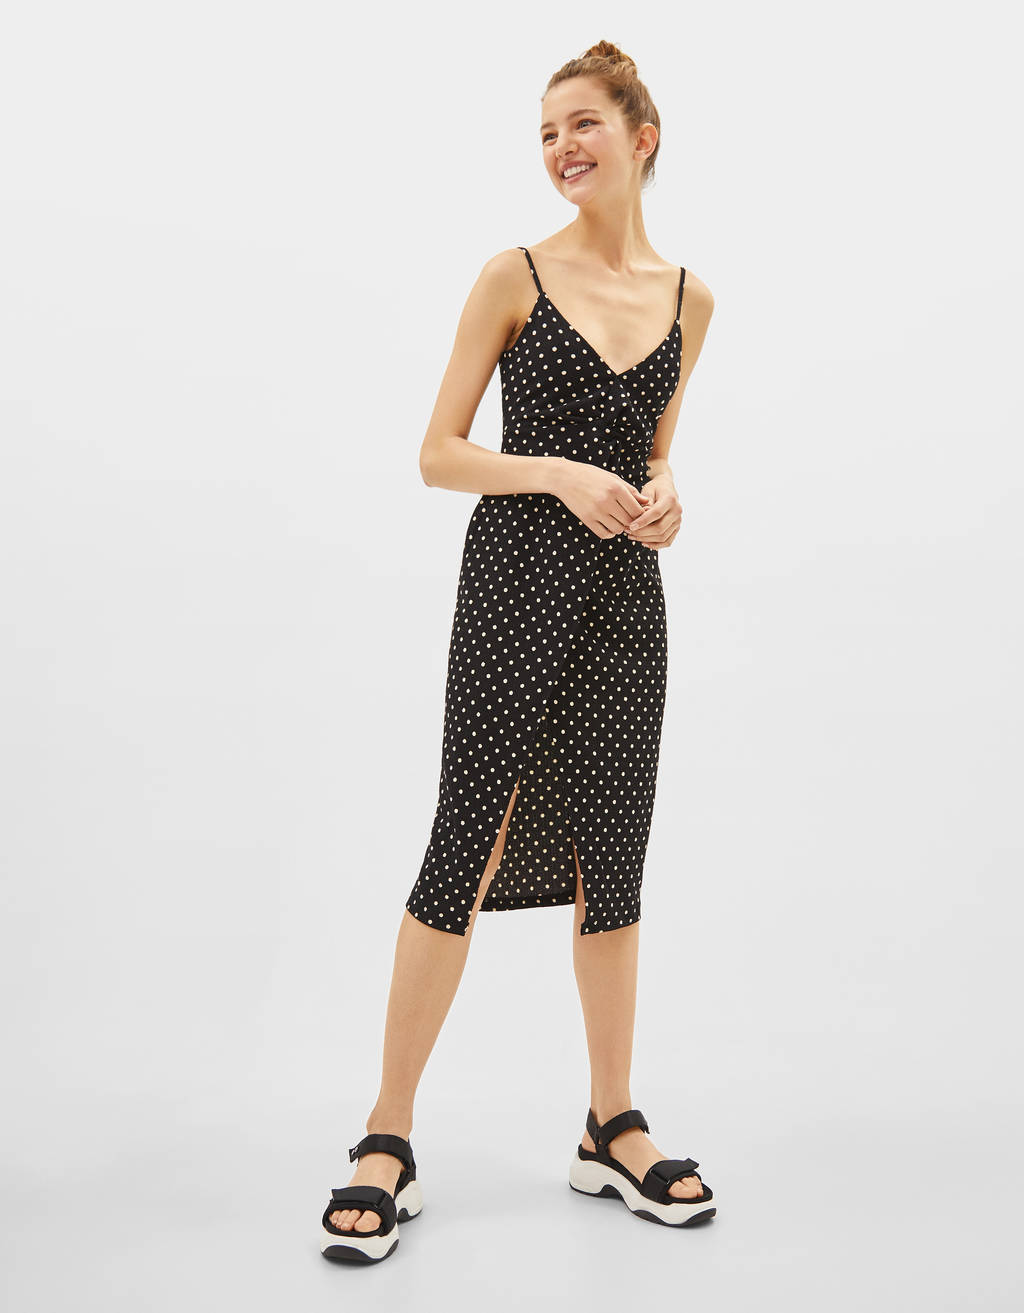 71f98ecbb2 Women s Dresses - Spring Summer 2019